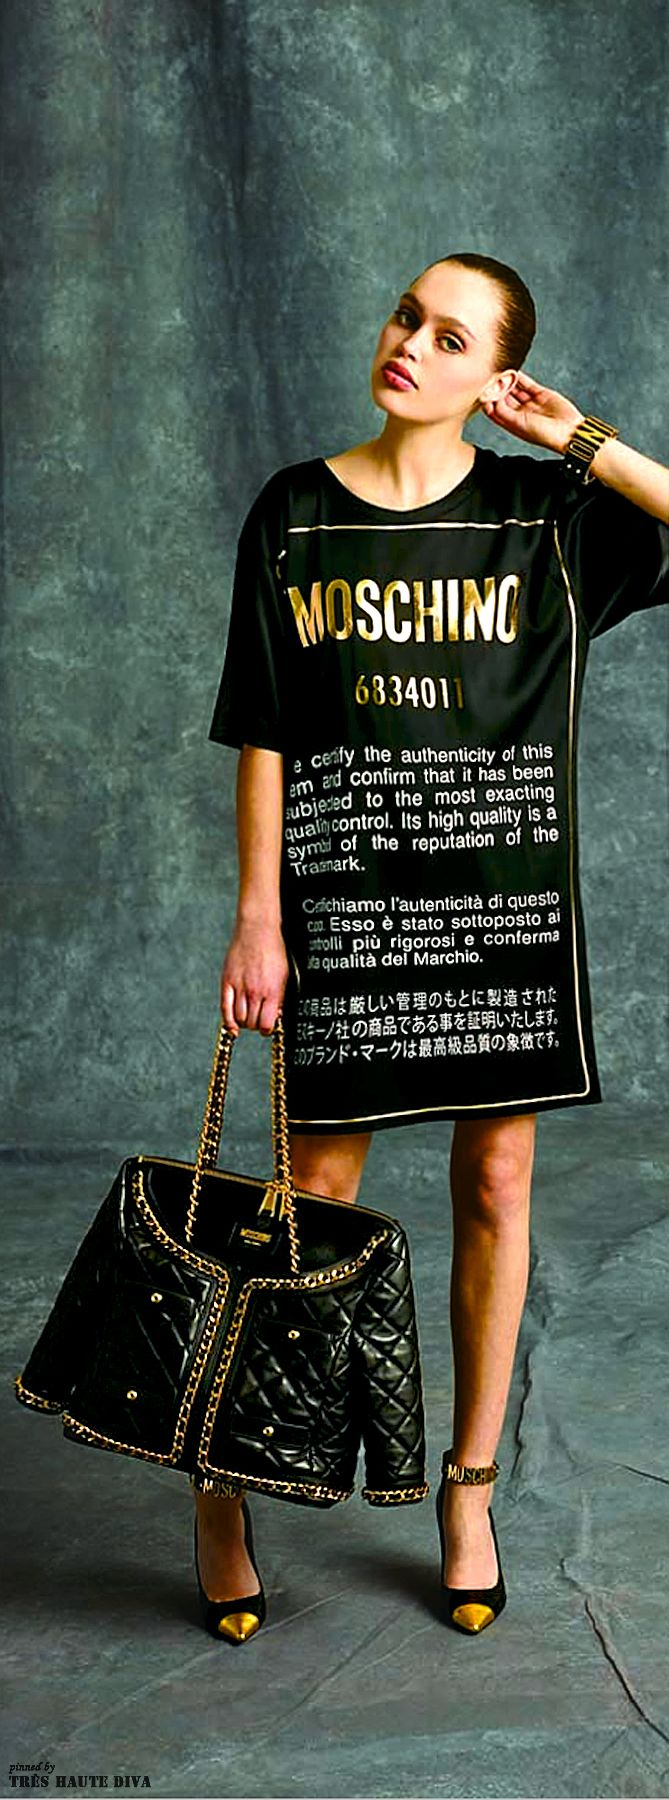 Moschino Pre-Fall 2014 http://www.vogue.com/fashion-week/pre-fall-2014/moschino/runway/#/collection/runway/pre-fall-2014/moschino/32 | The House of Beccaria